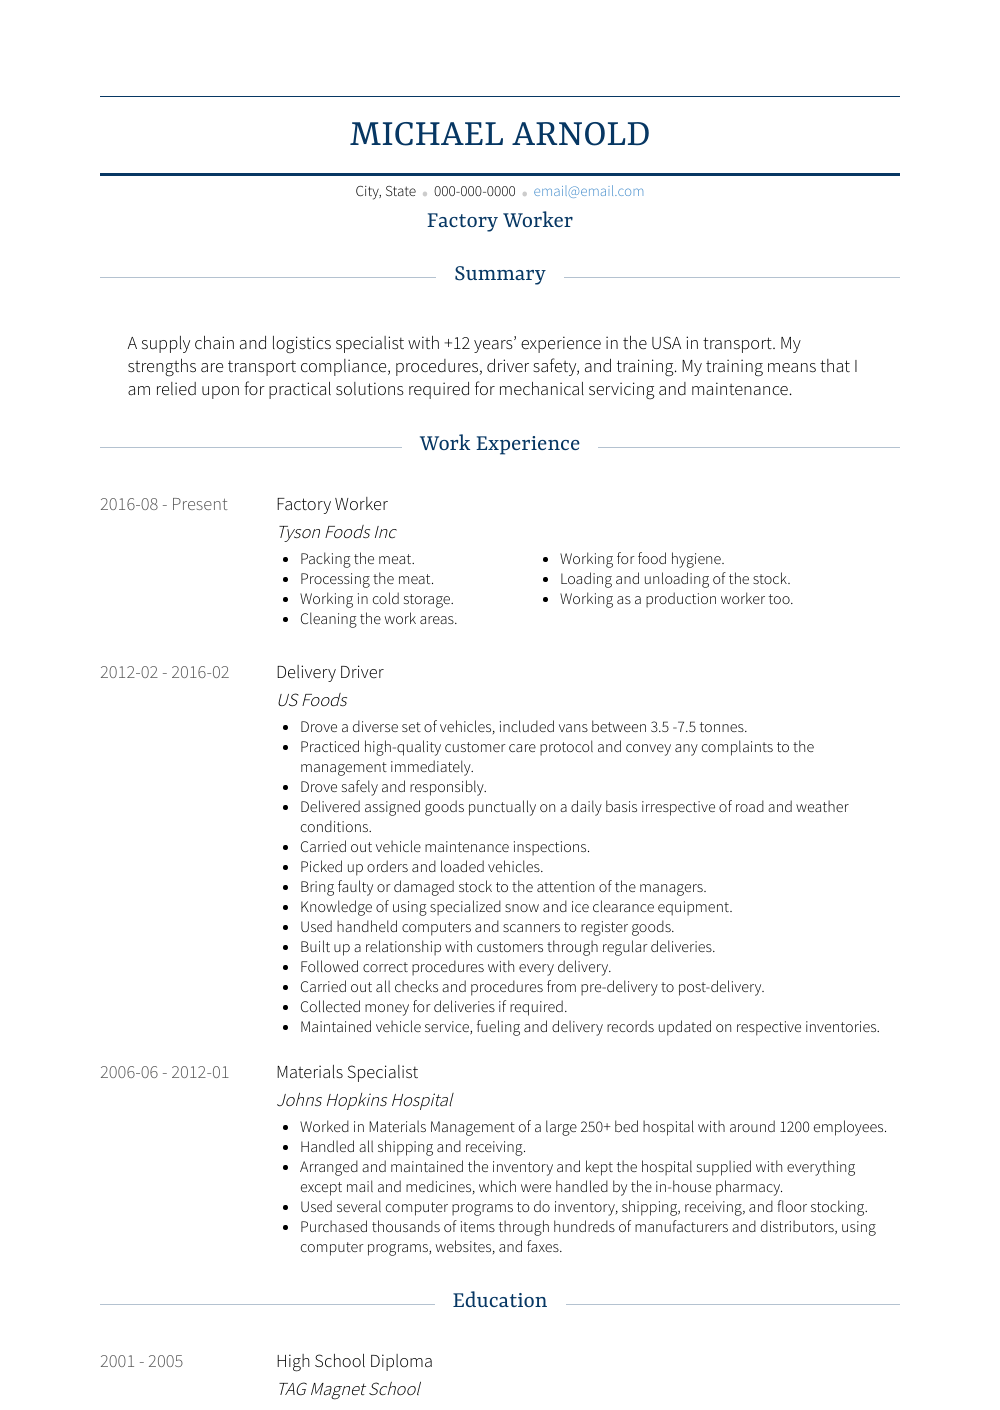 Resume For A Factory Worker